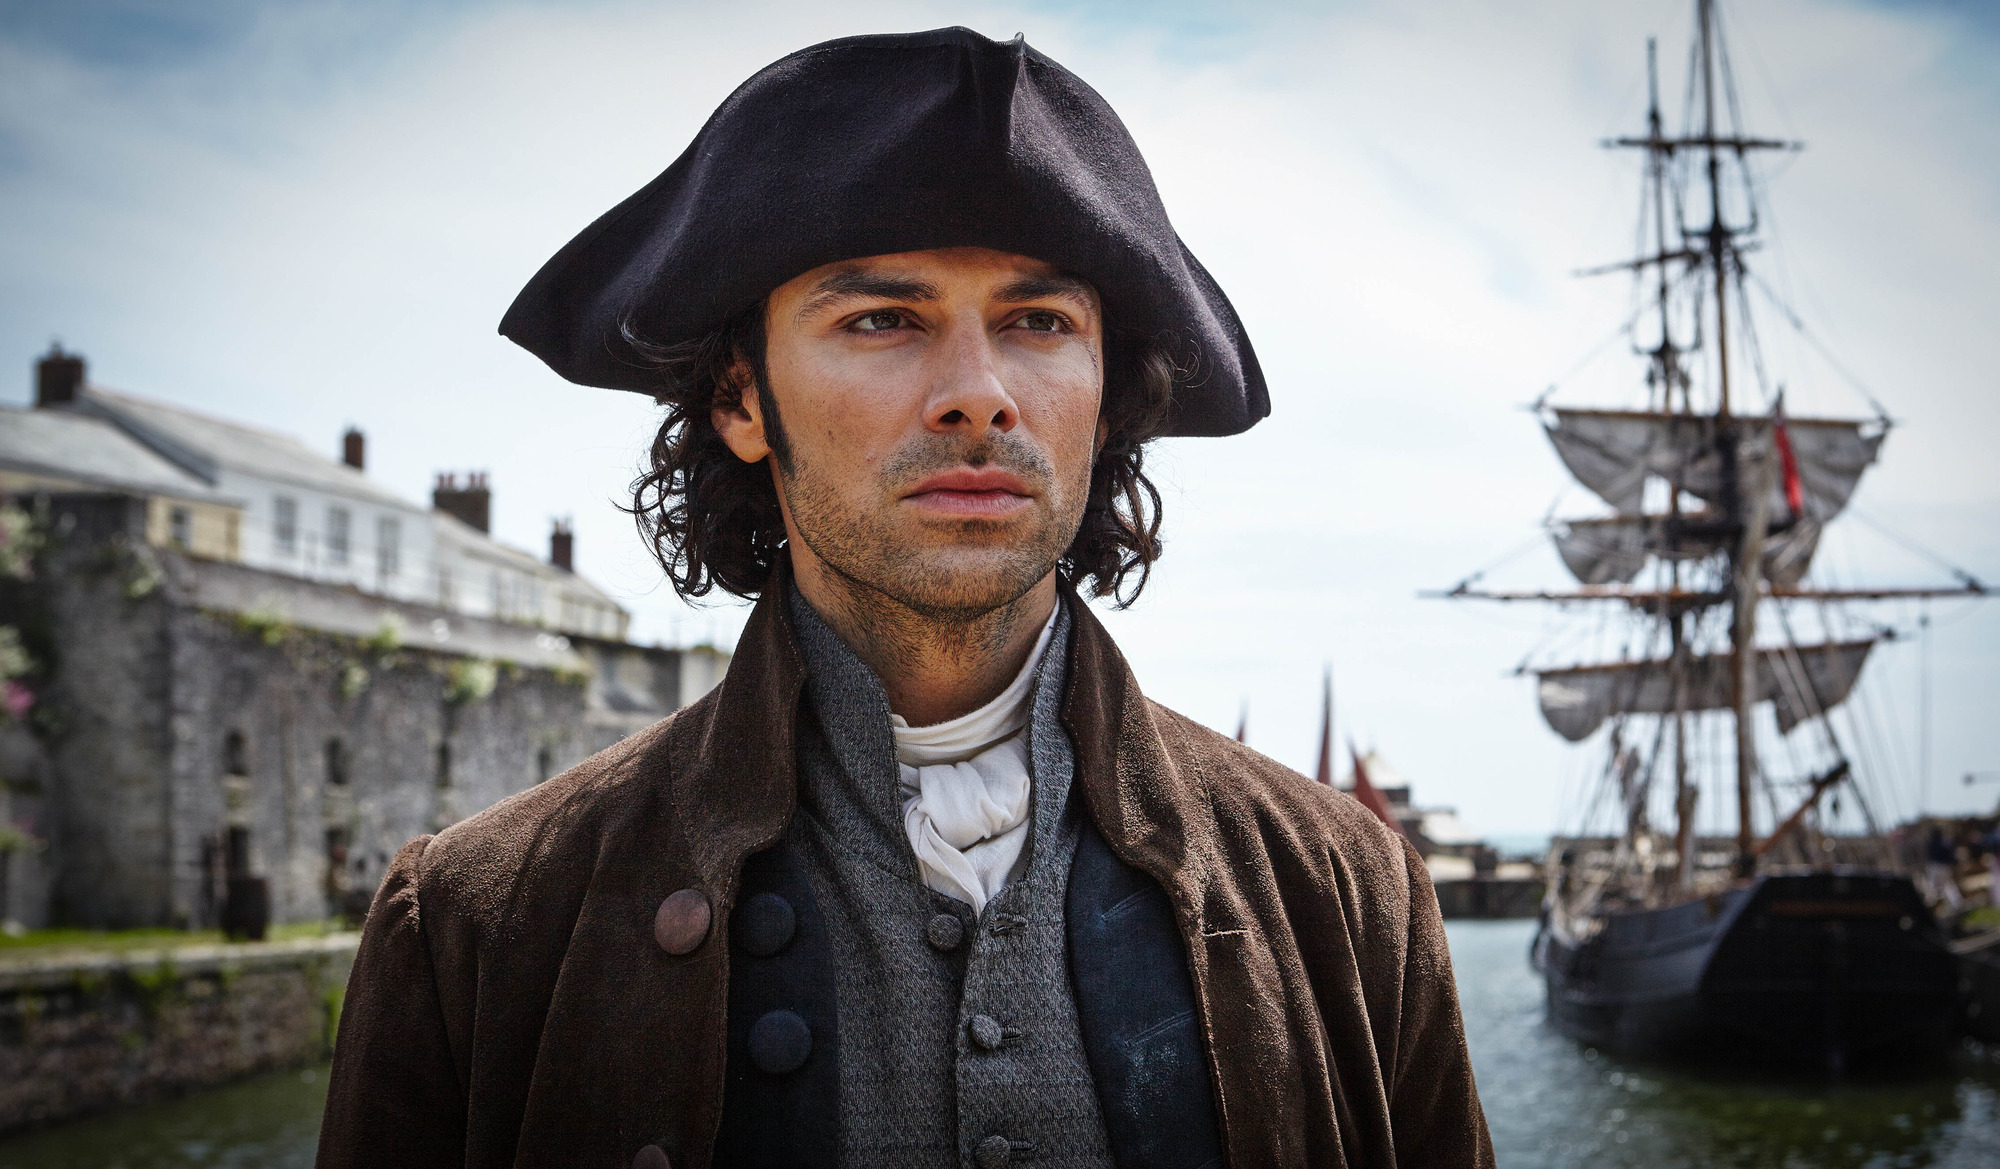 Devon to Cornwall Short Break Poldark Coasts & Charlestown Regatta -3nts 21st Jul